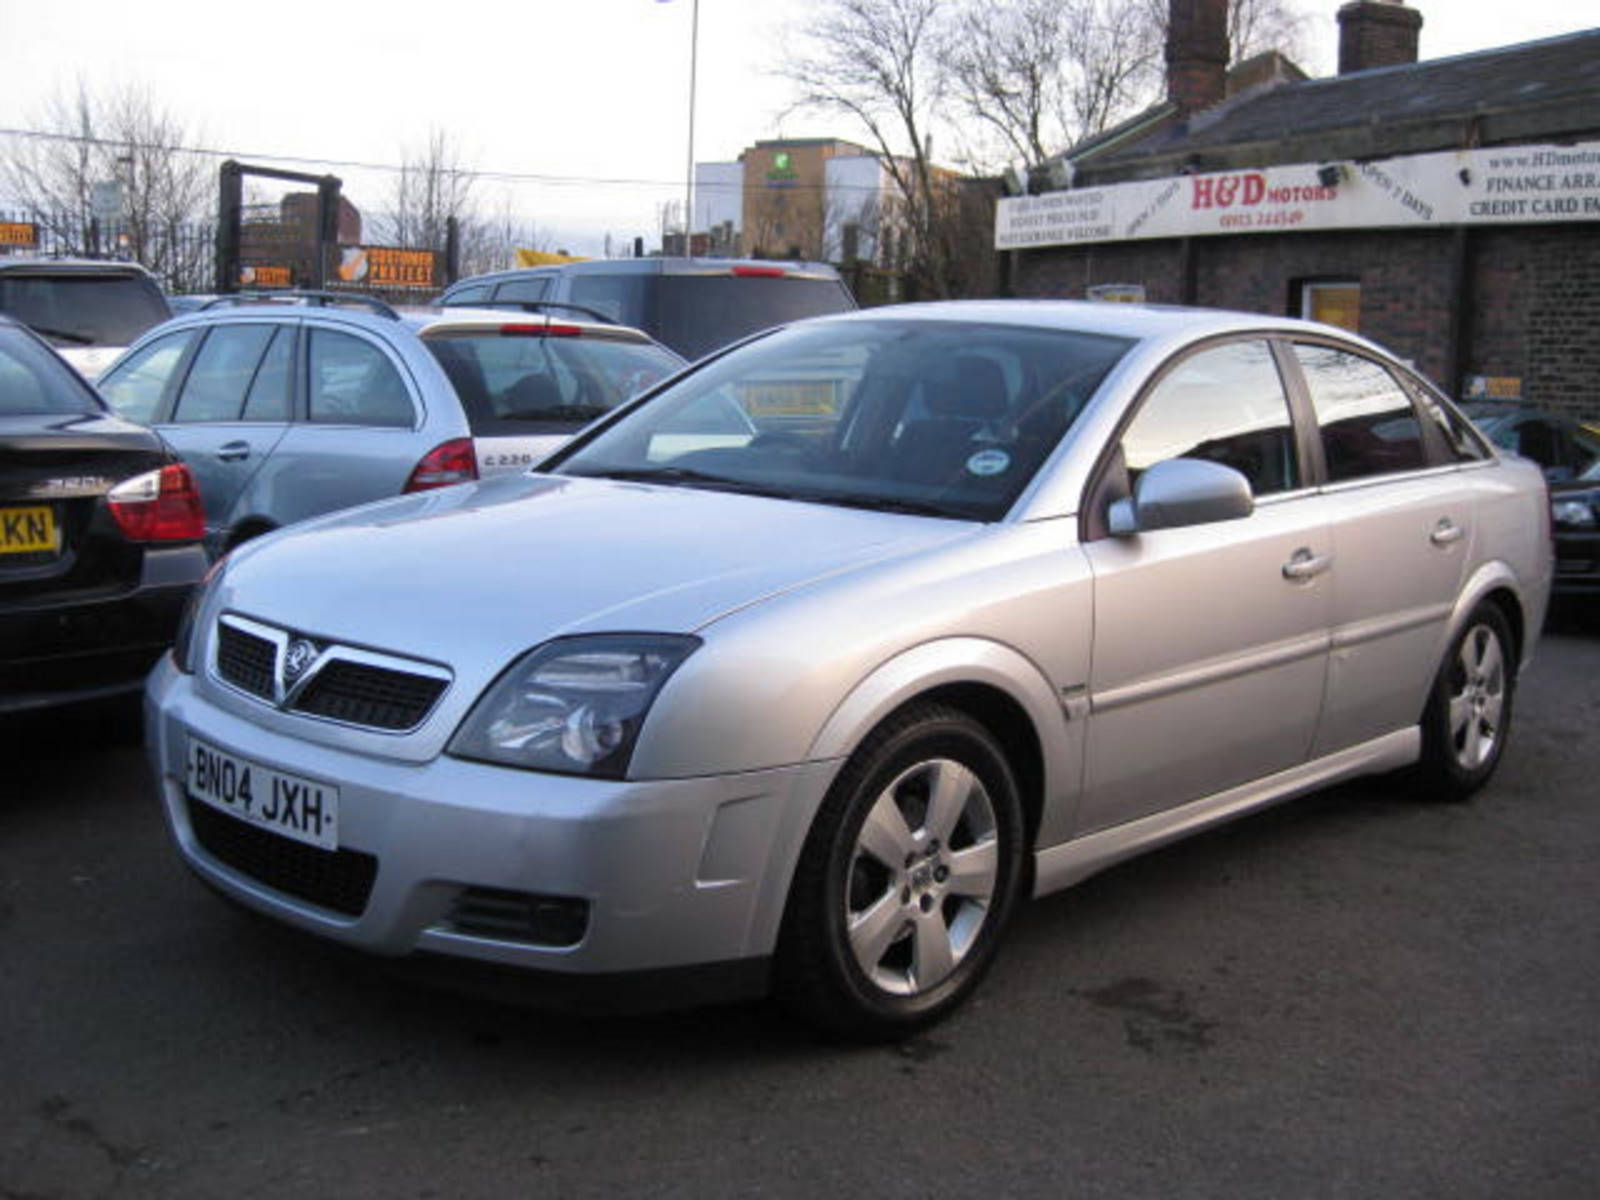 Vauxhall Vectra 1.8 SXi Hatchback Petrol/Gas Silver at H & D Motors Watford